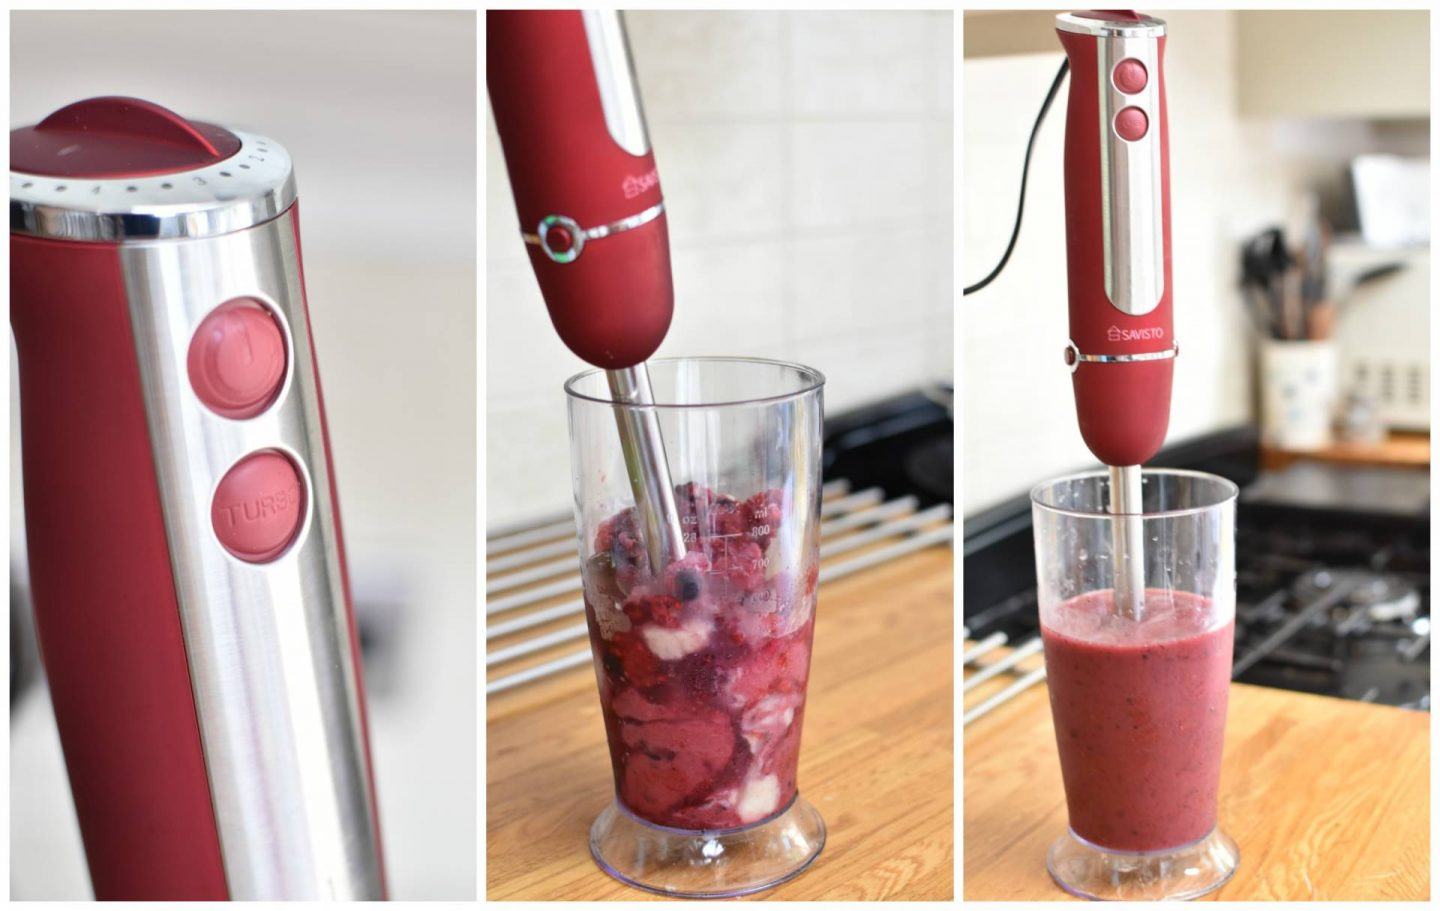 Testing out the Savisto hand blender on smoothies, just one of my must have appliances.